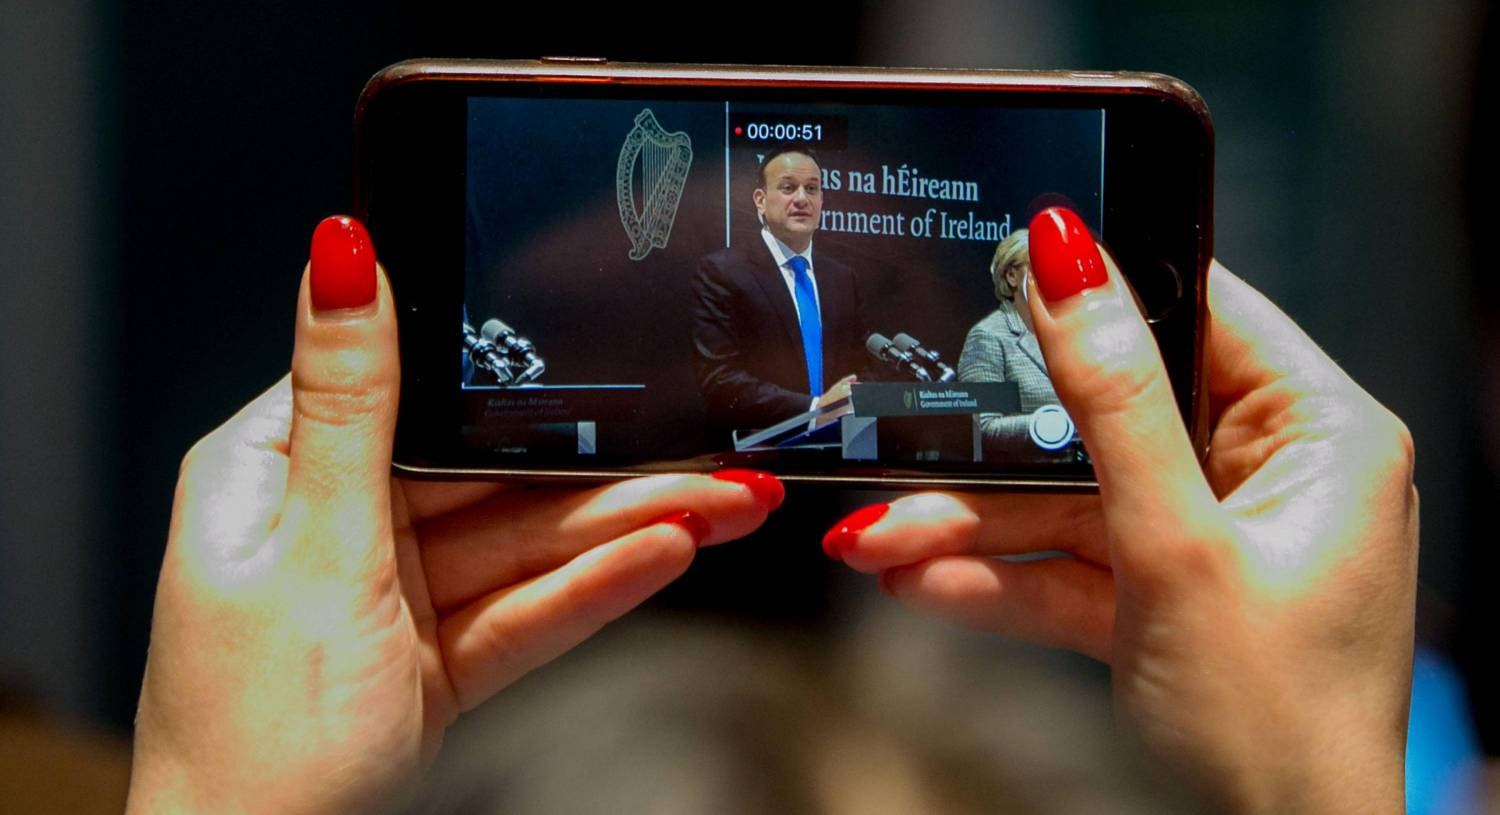 Special Report: Army councils and civil service tensions - life inside Leo Varadkar's Cabinet